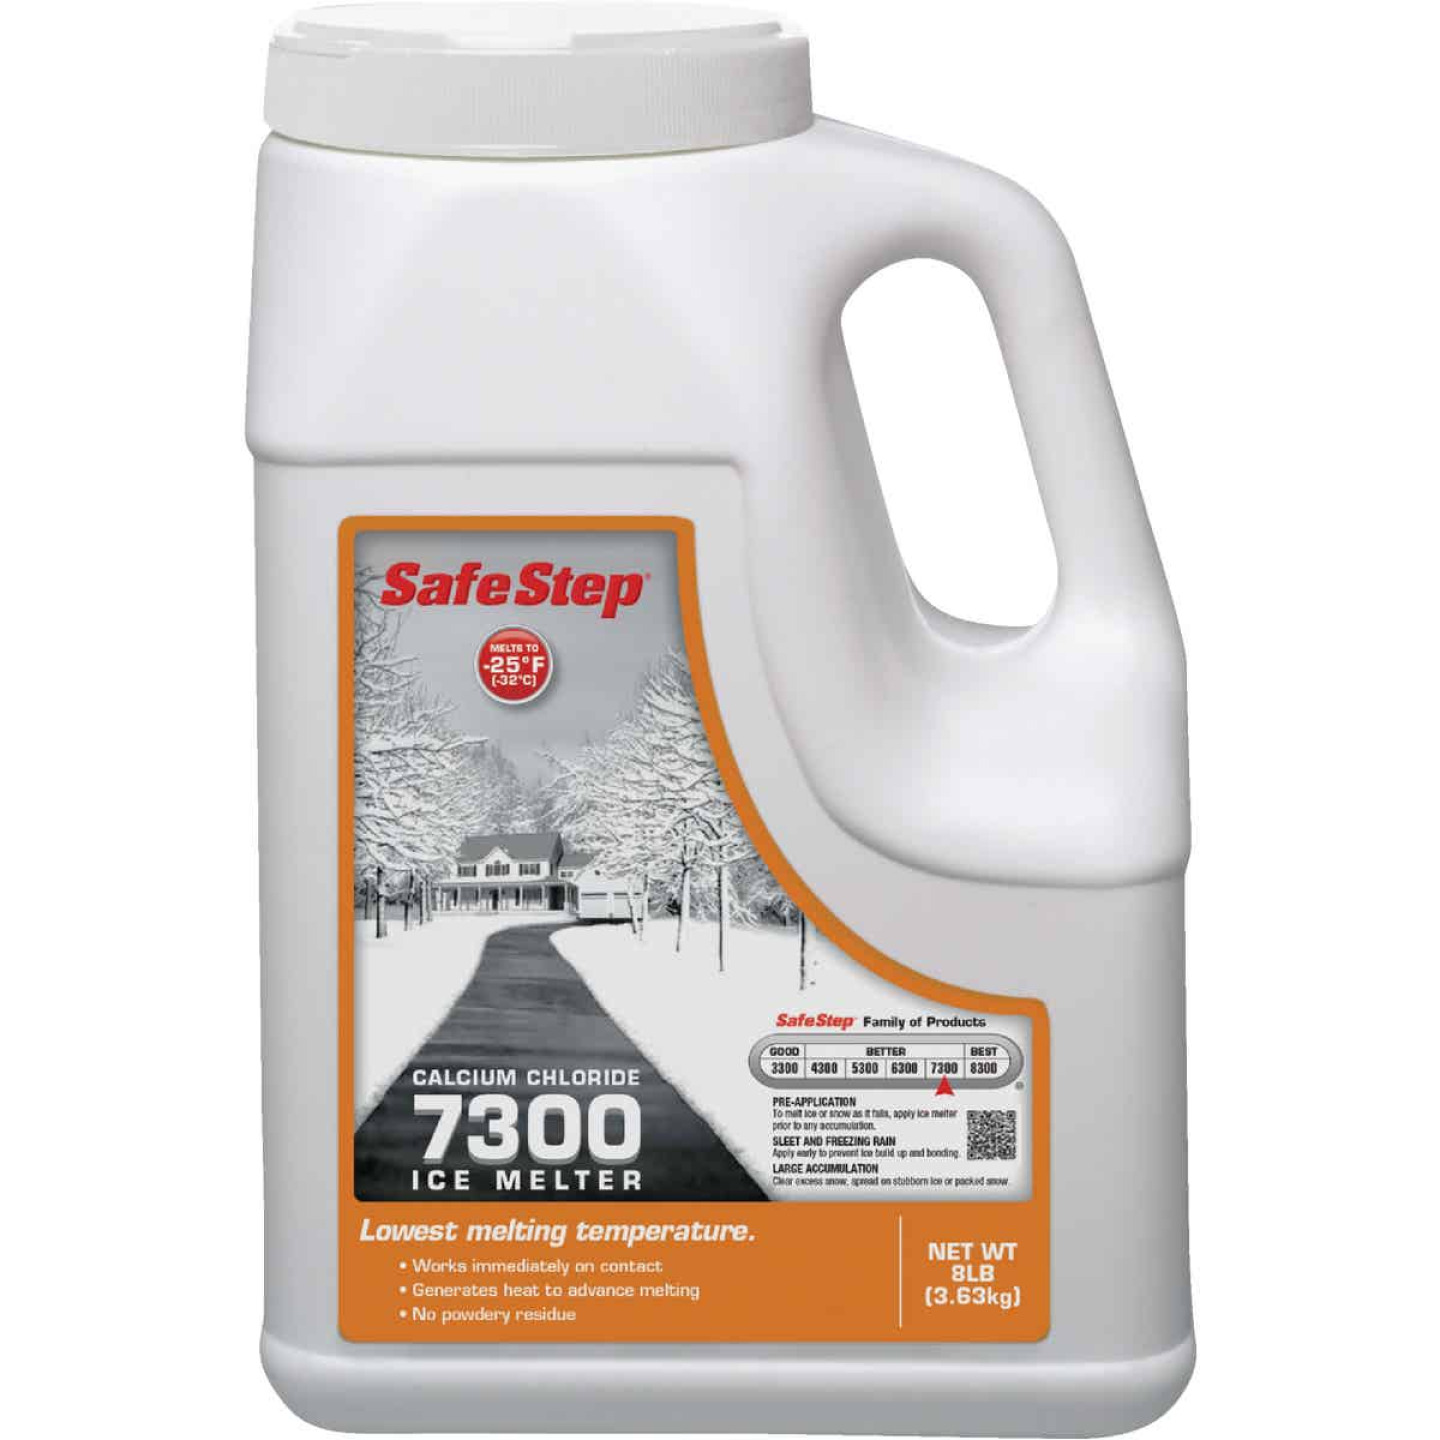 Safe Step 7300 8 Lb. Calcium Chloride Ice Melt Pellets Image 1